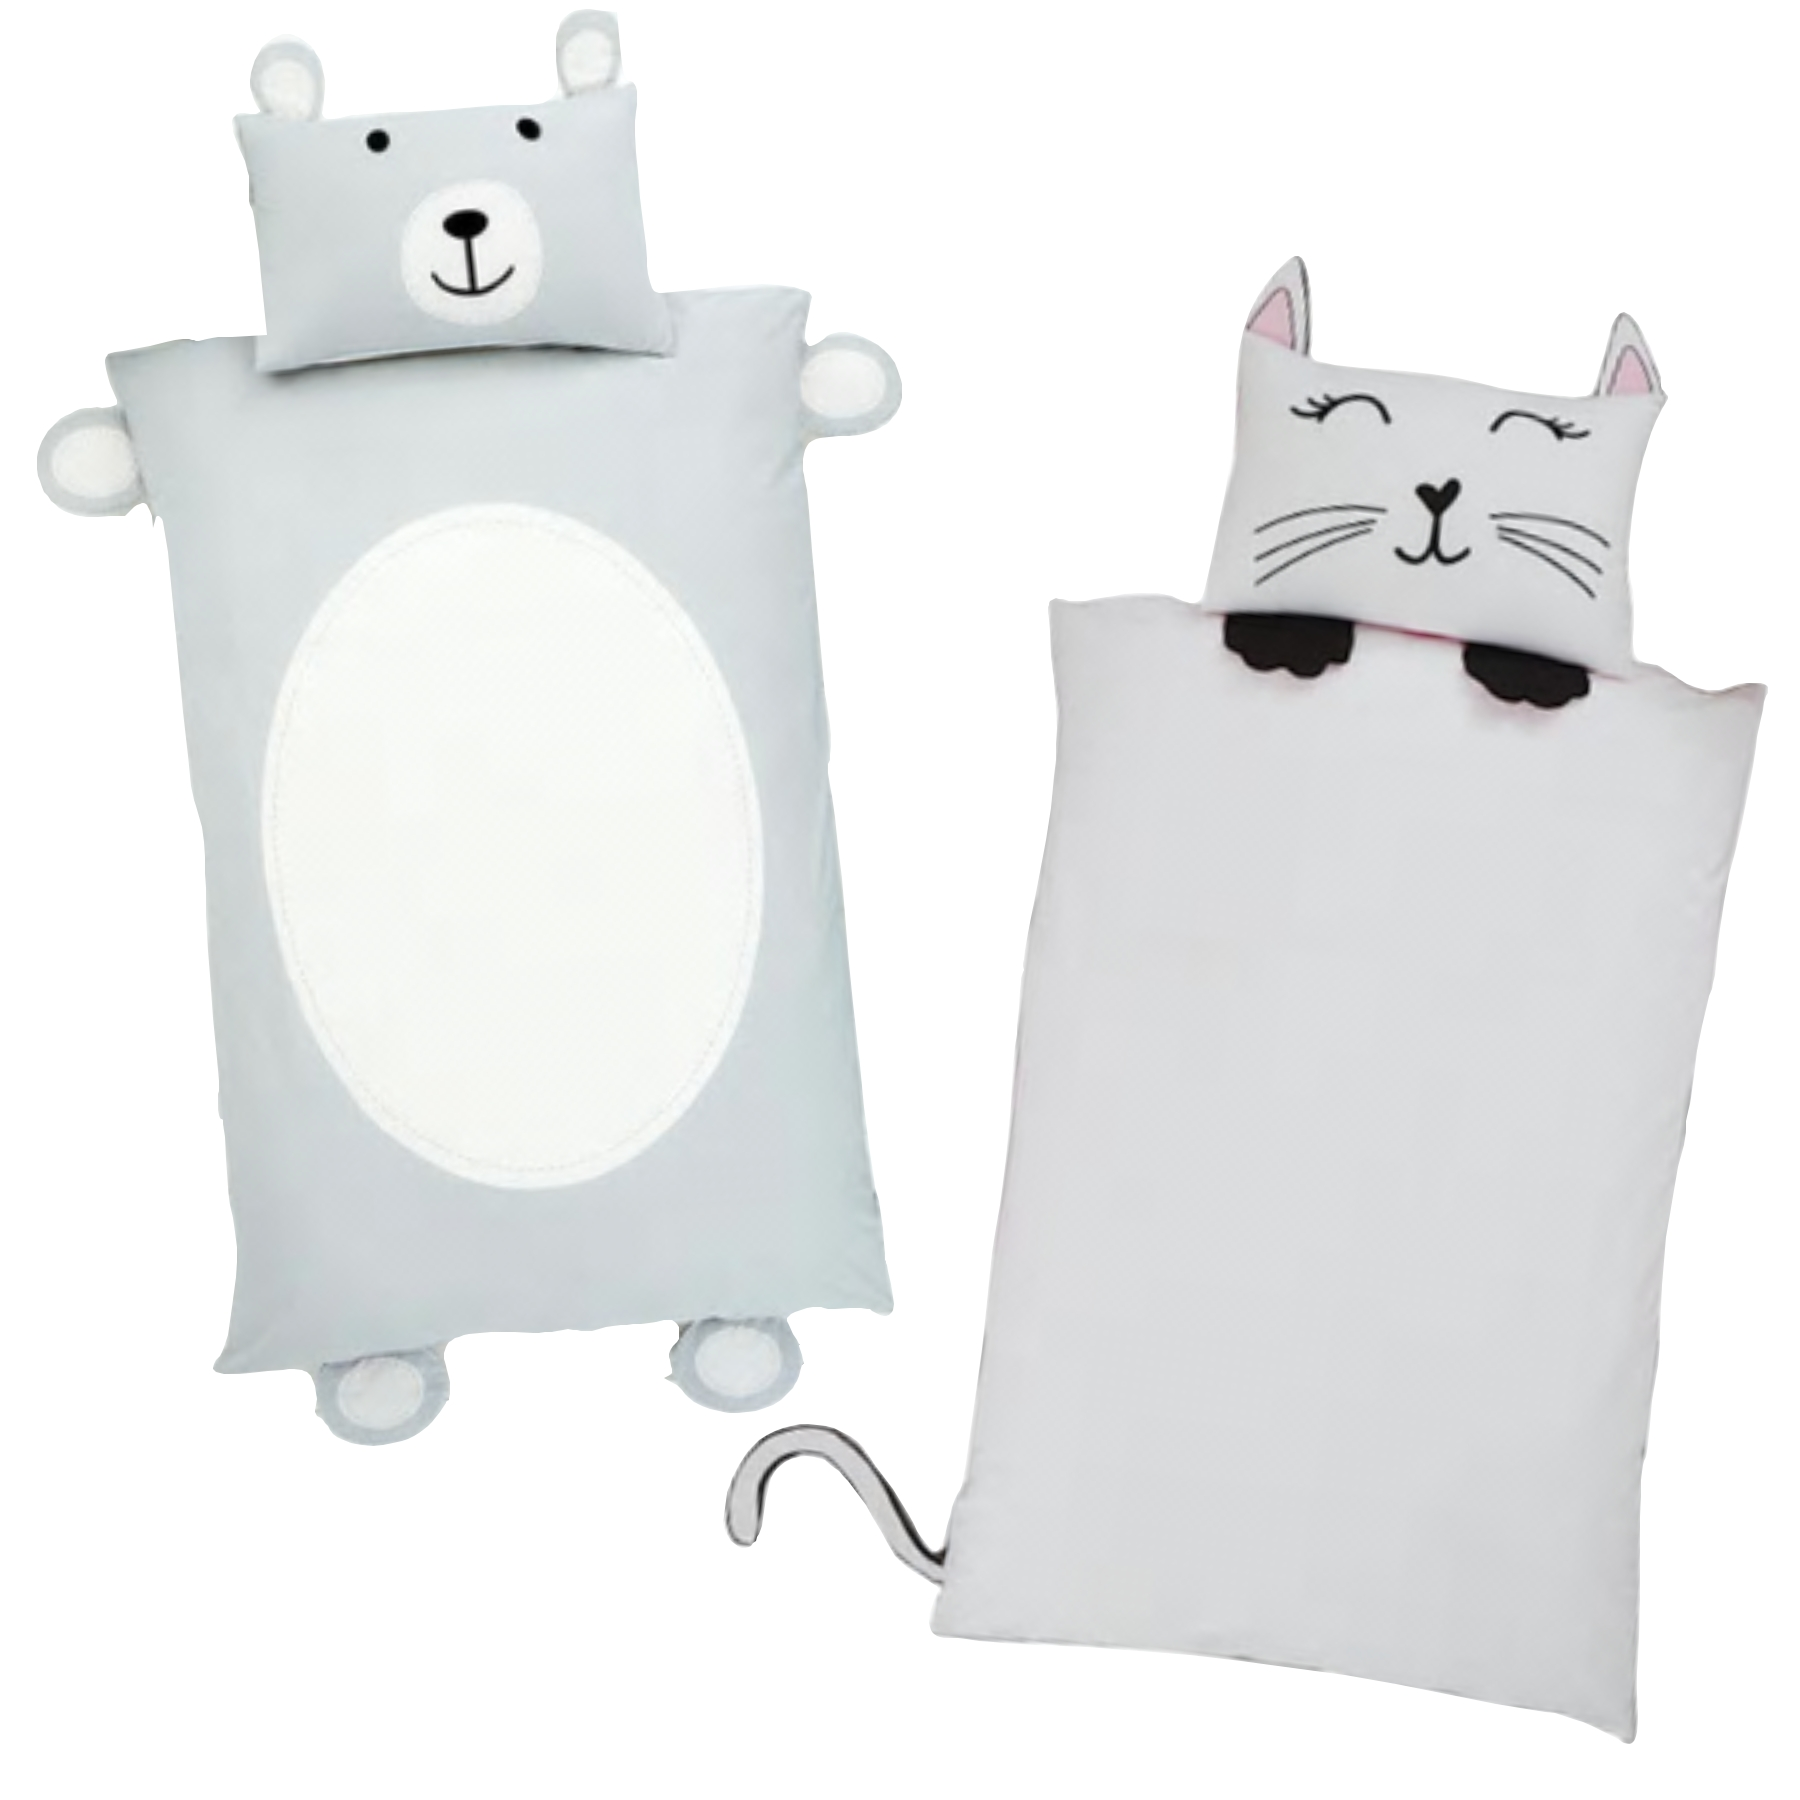 Teddybear shaped single bedding and cat shaped single bedding